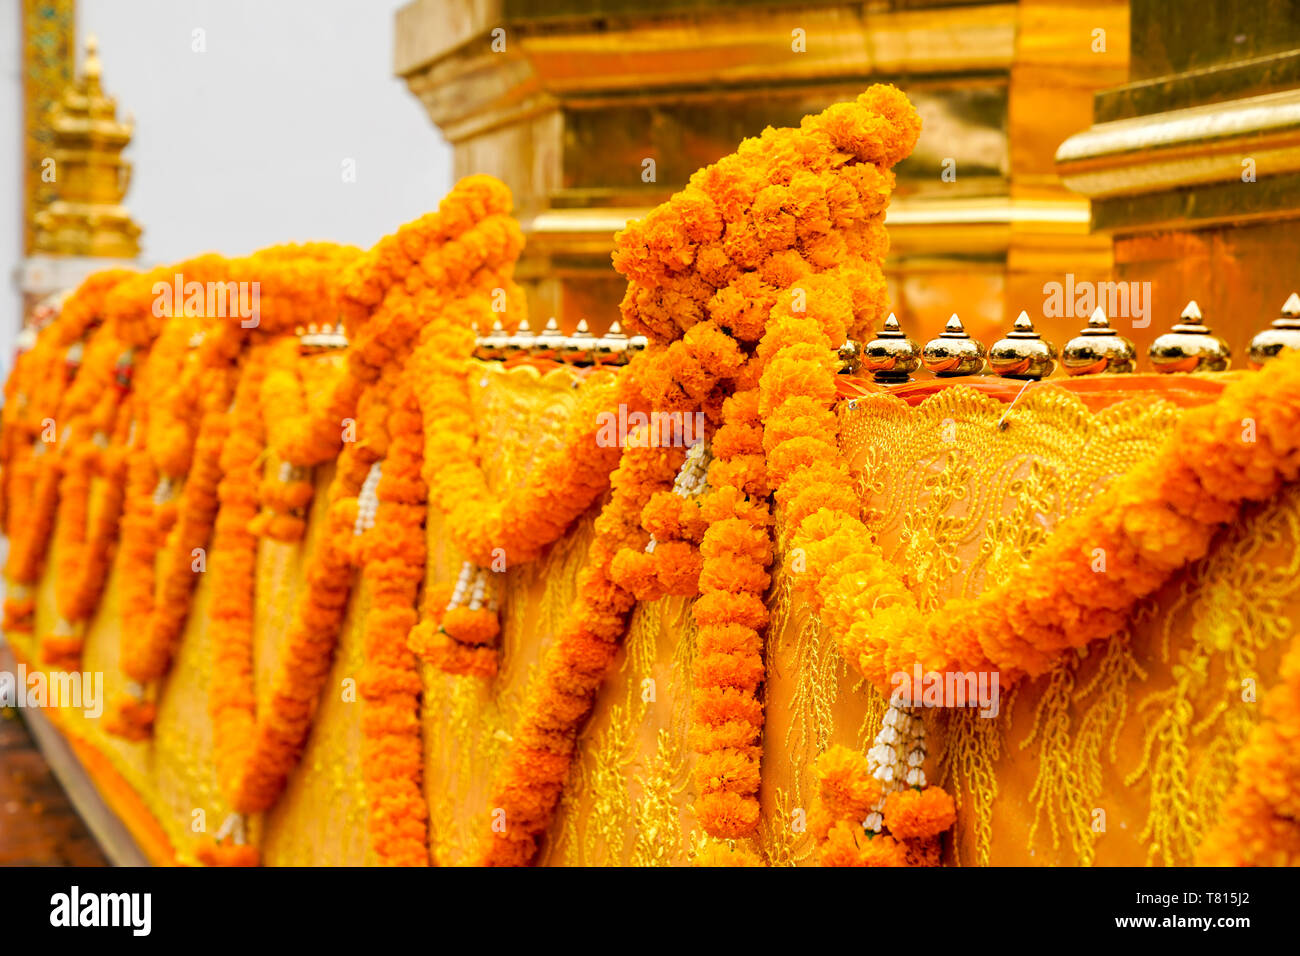 Thai calendula craft garland handmade hang on to pagoda barricade covered by yellow gold cloth. Stock Photo